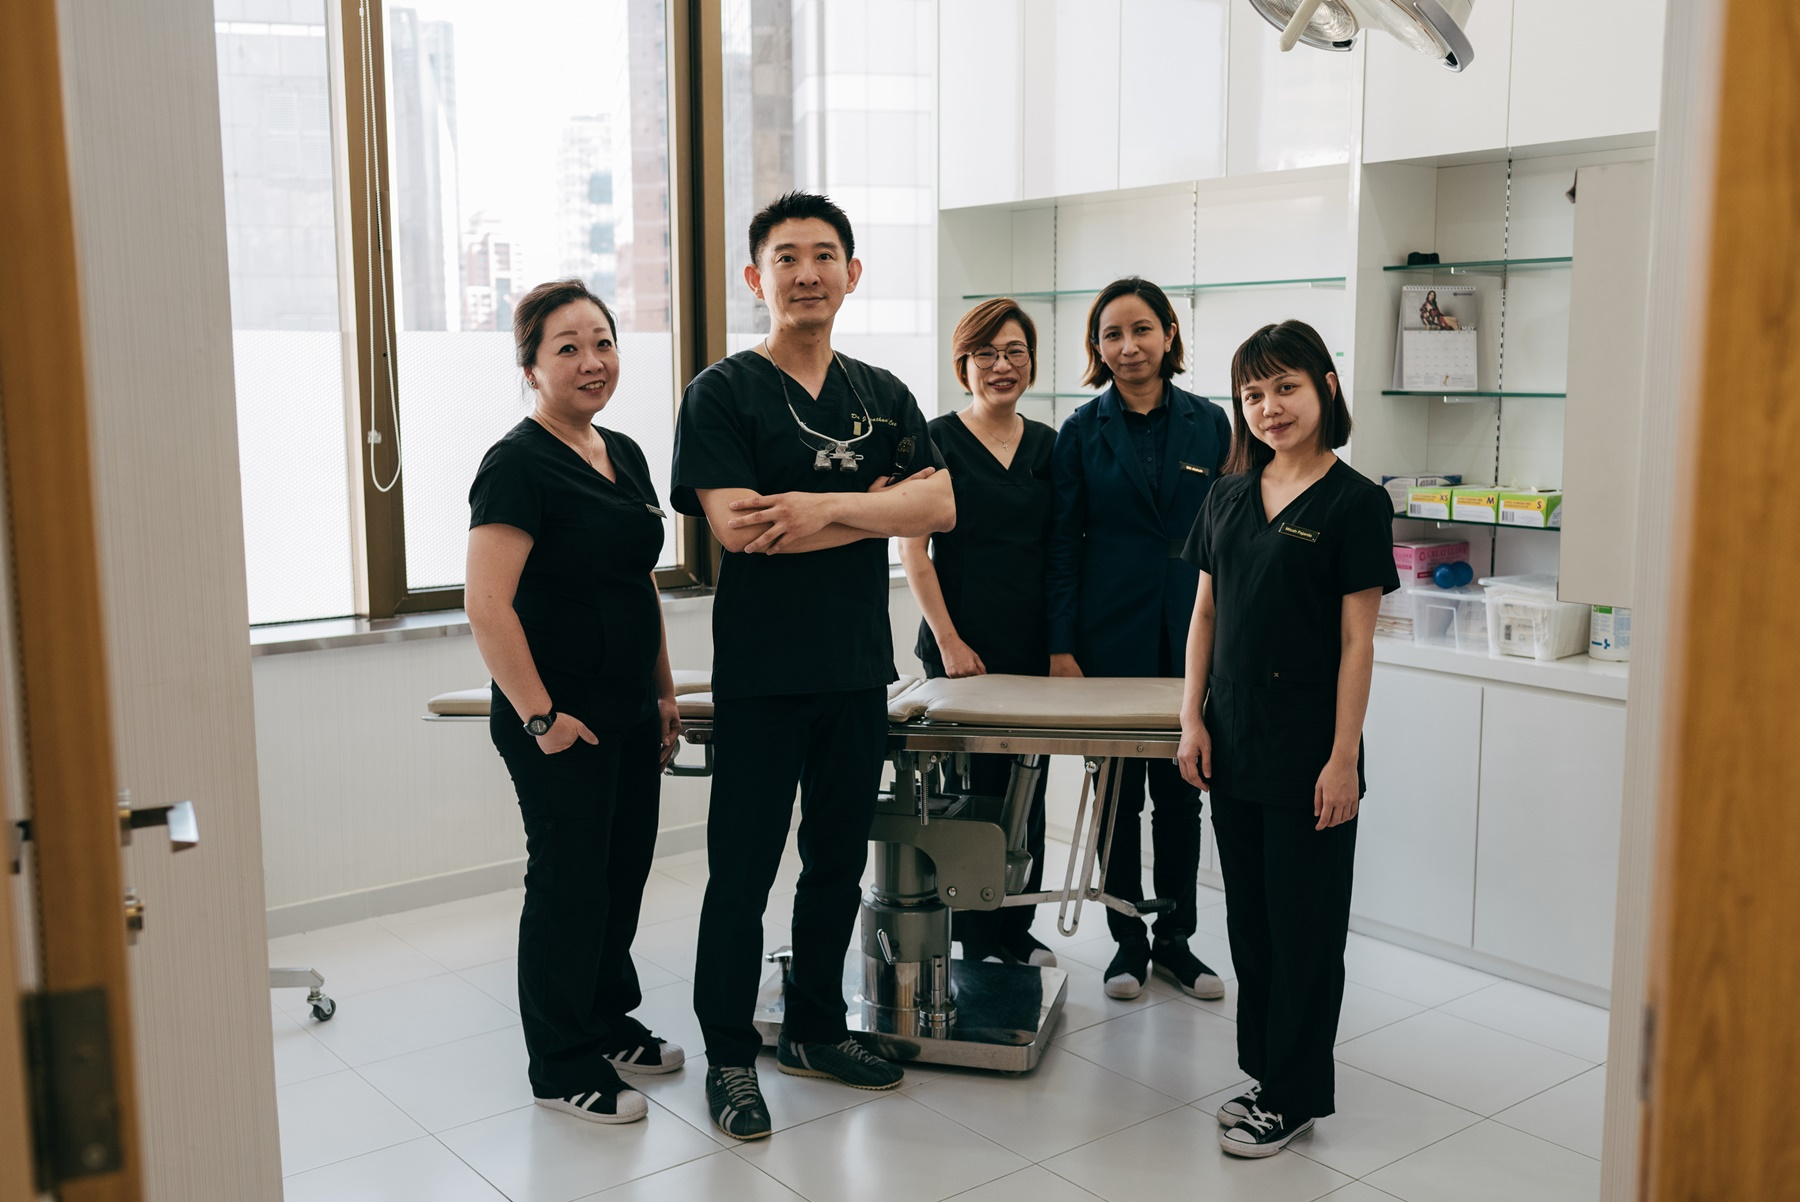 Our professional team of specialist surgeon, certified nurses and therapists